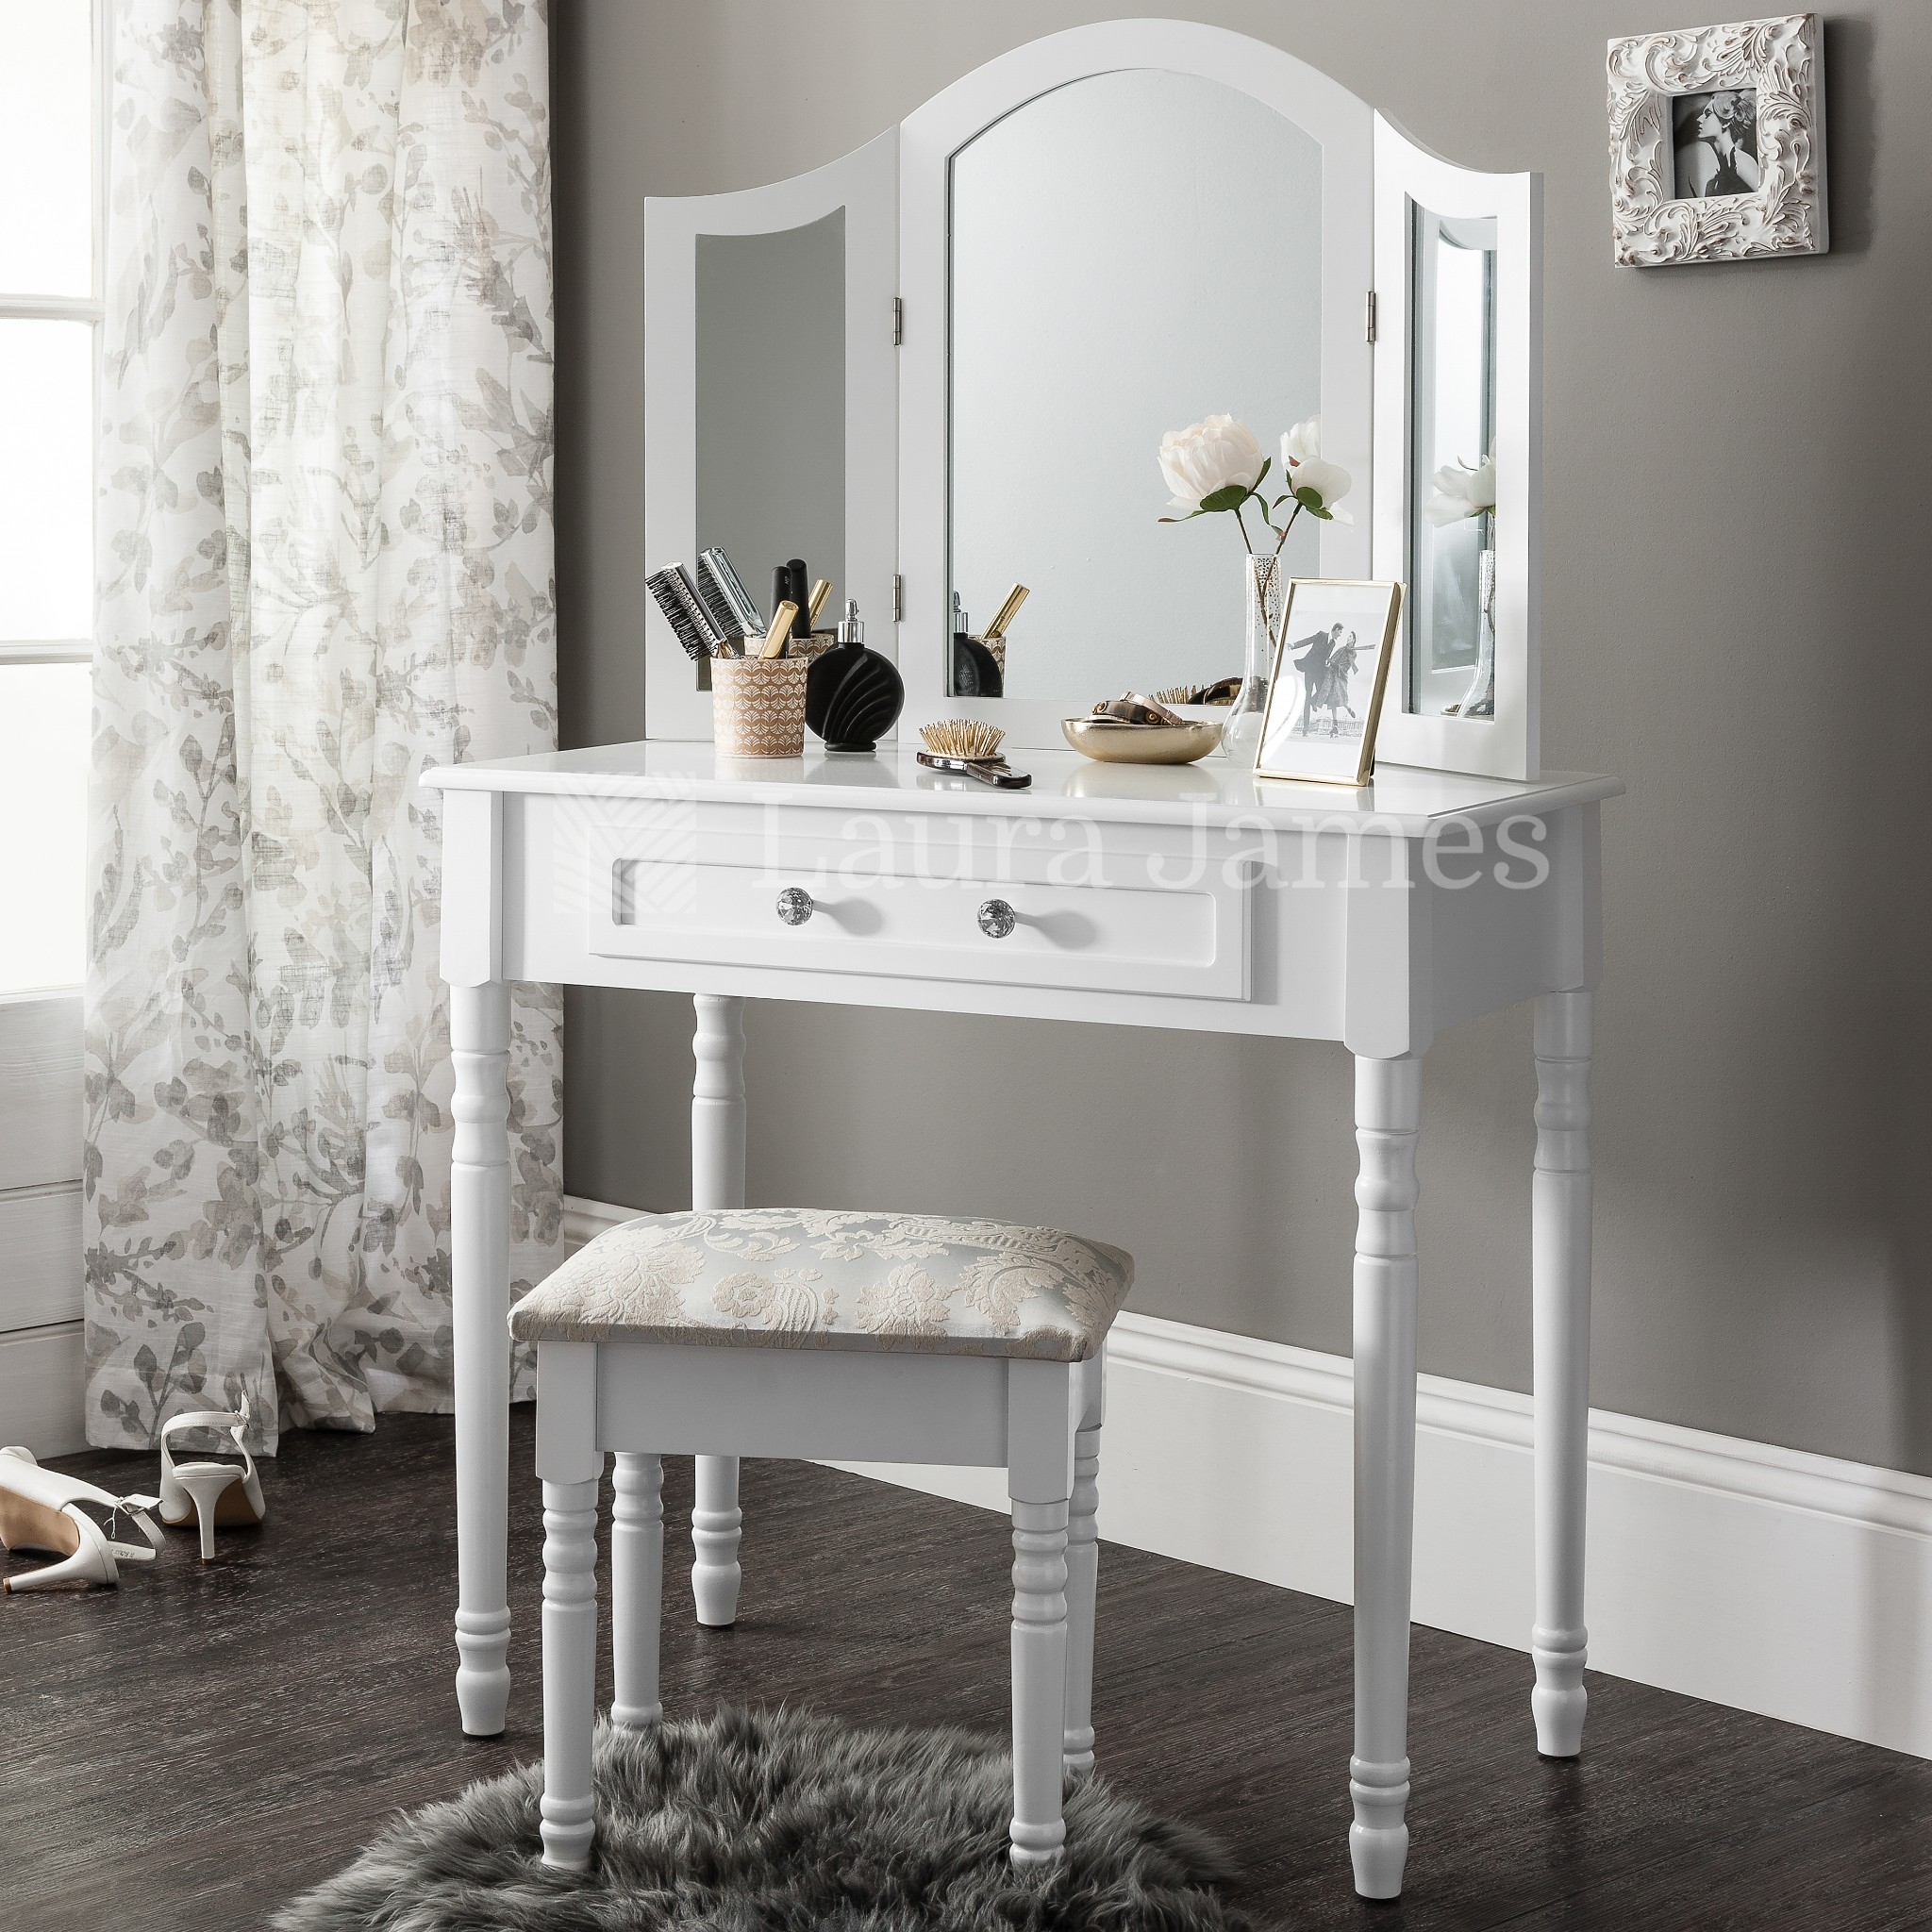 Fabulous Vanity Stool South Africa Sienna White Dressing Table Mirror Dailytribune Chair Design For Home Dailytribuneorg